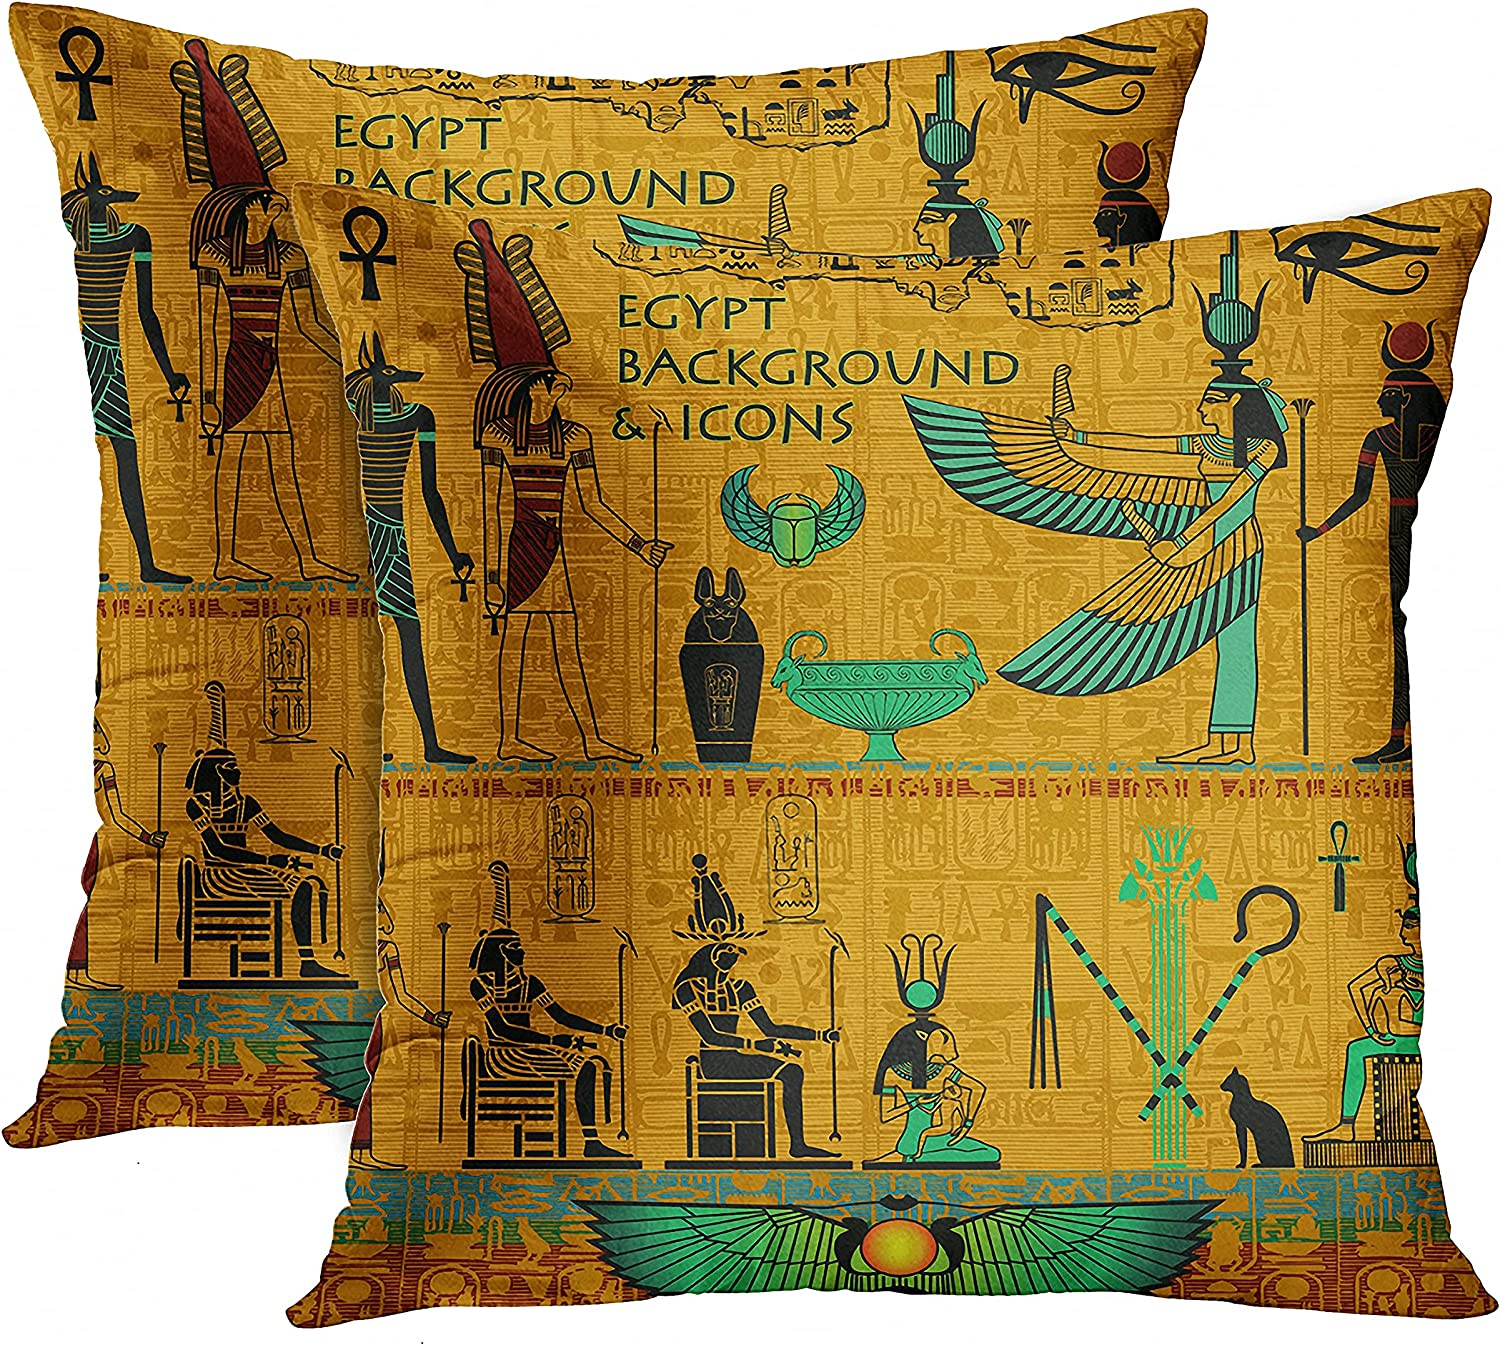 Emvency Set of 2 Throw Pillow Covers Ancient Black Turquoise and Yellow Words Egypt Background Icons Egyptian Deities Decorative Pillow Cases Home Decor Standard Square 18x18 Inches Pillowcases